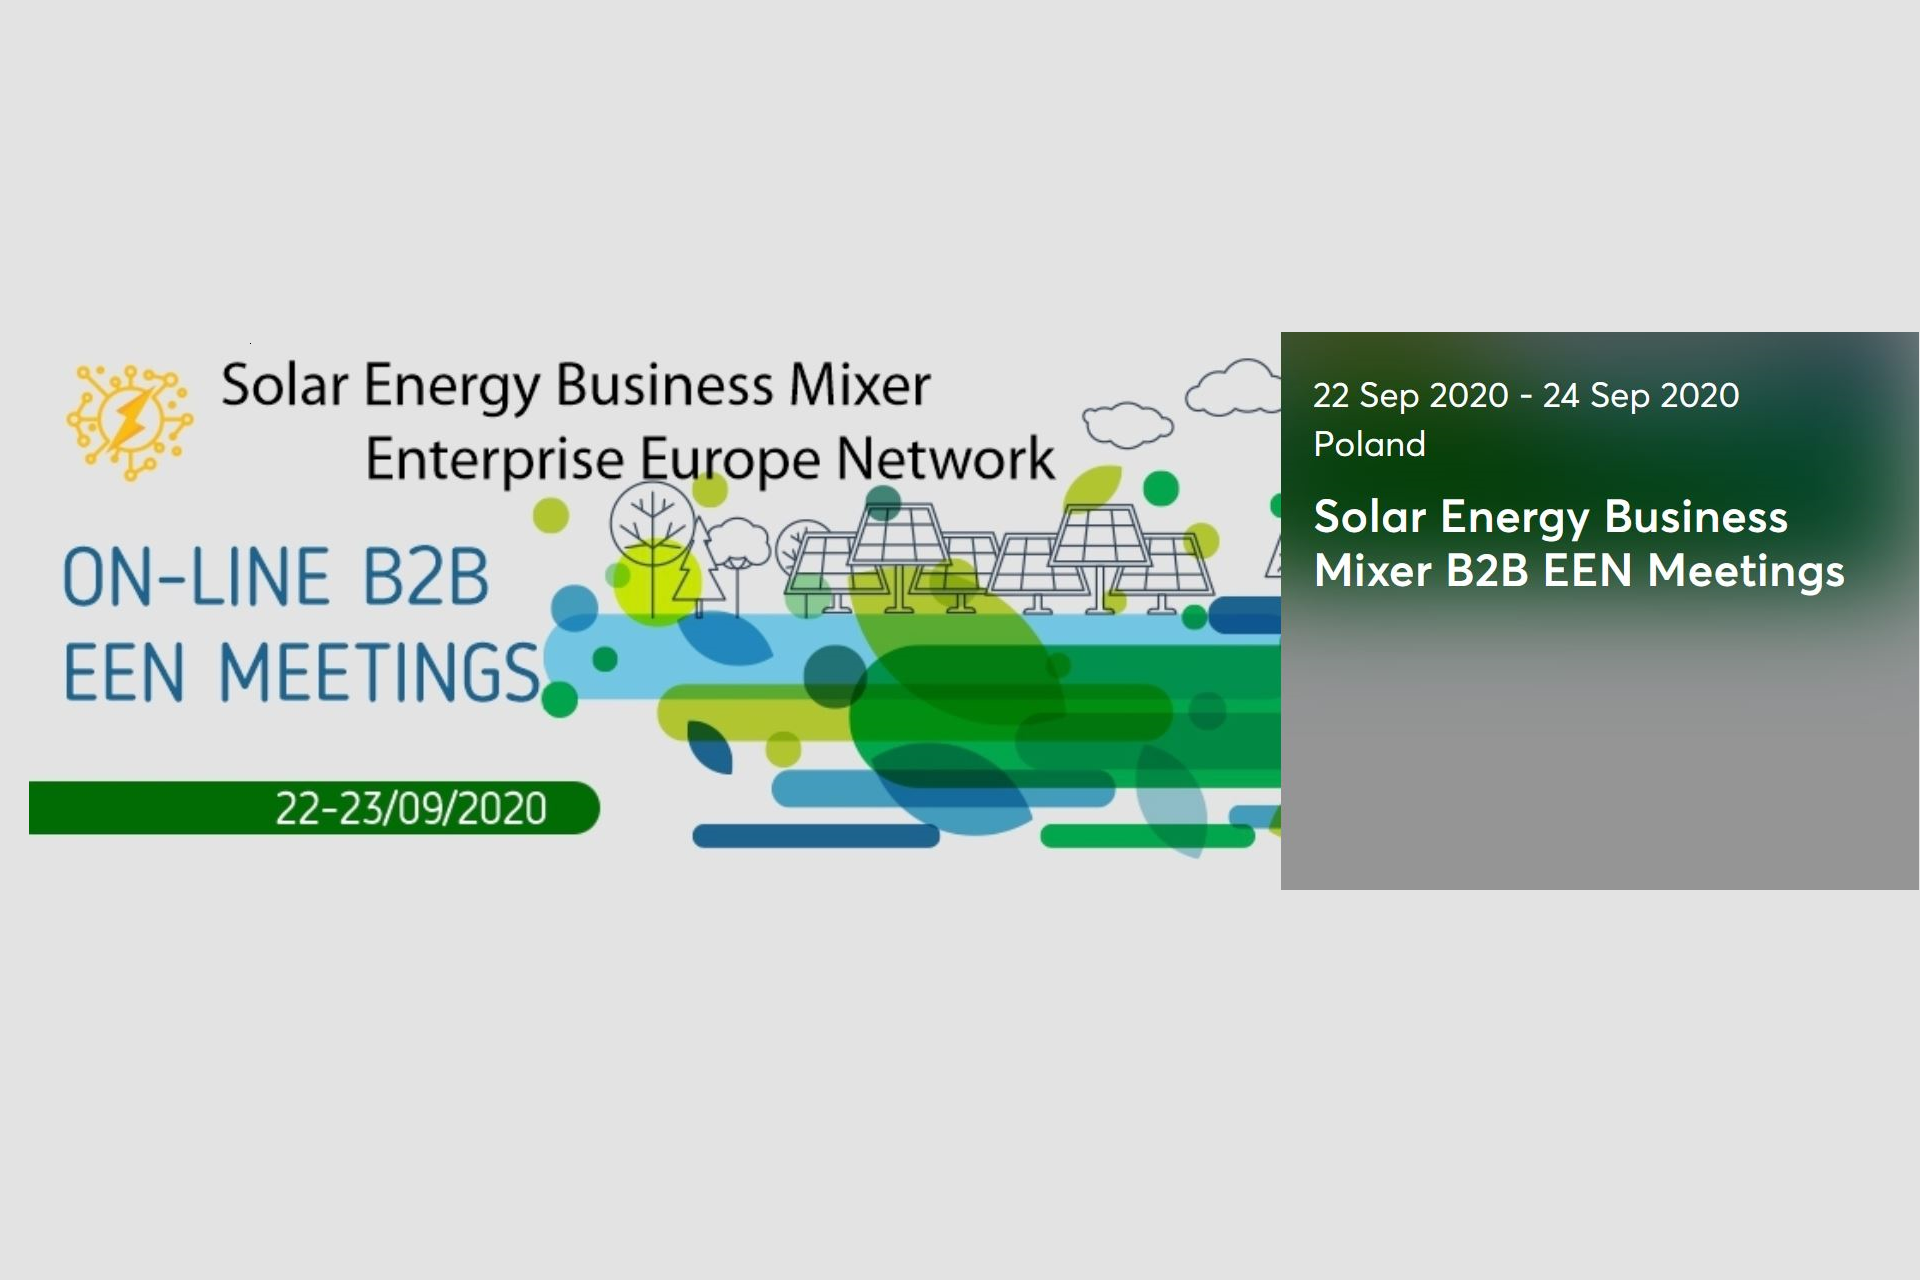 Solar Energy Business Mixer<br>On-line B2B EEN Meetings